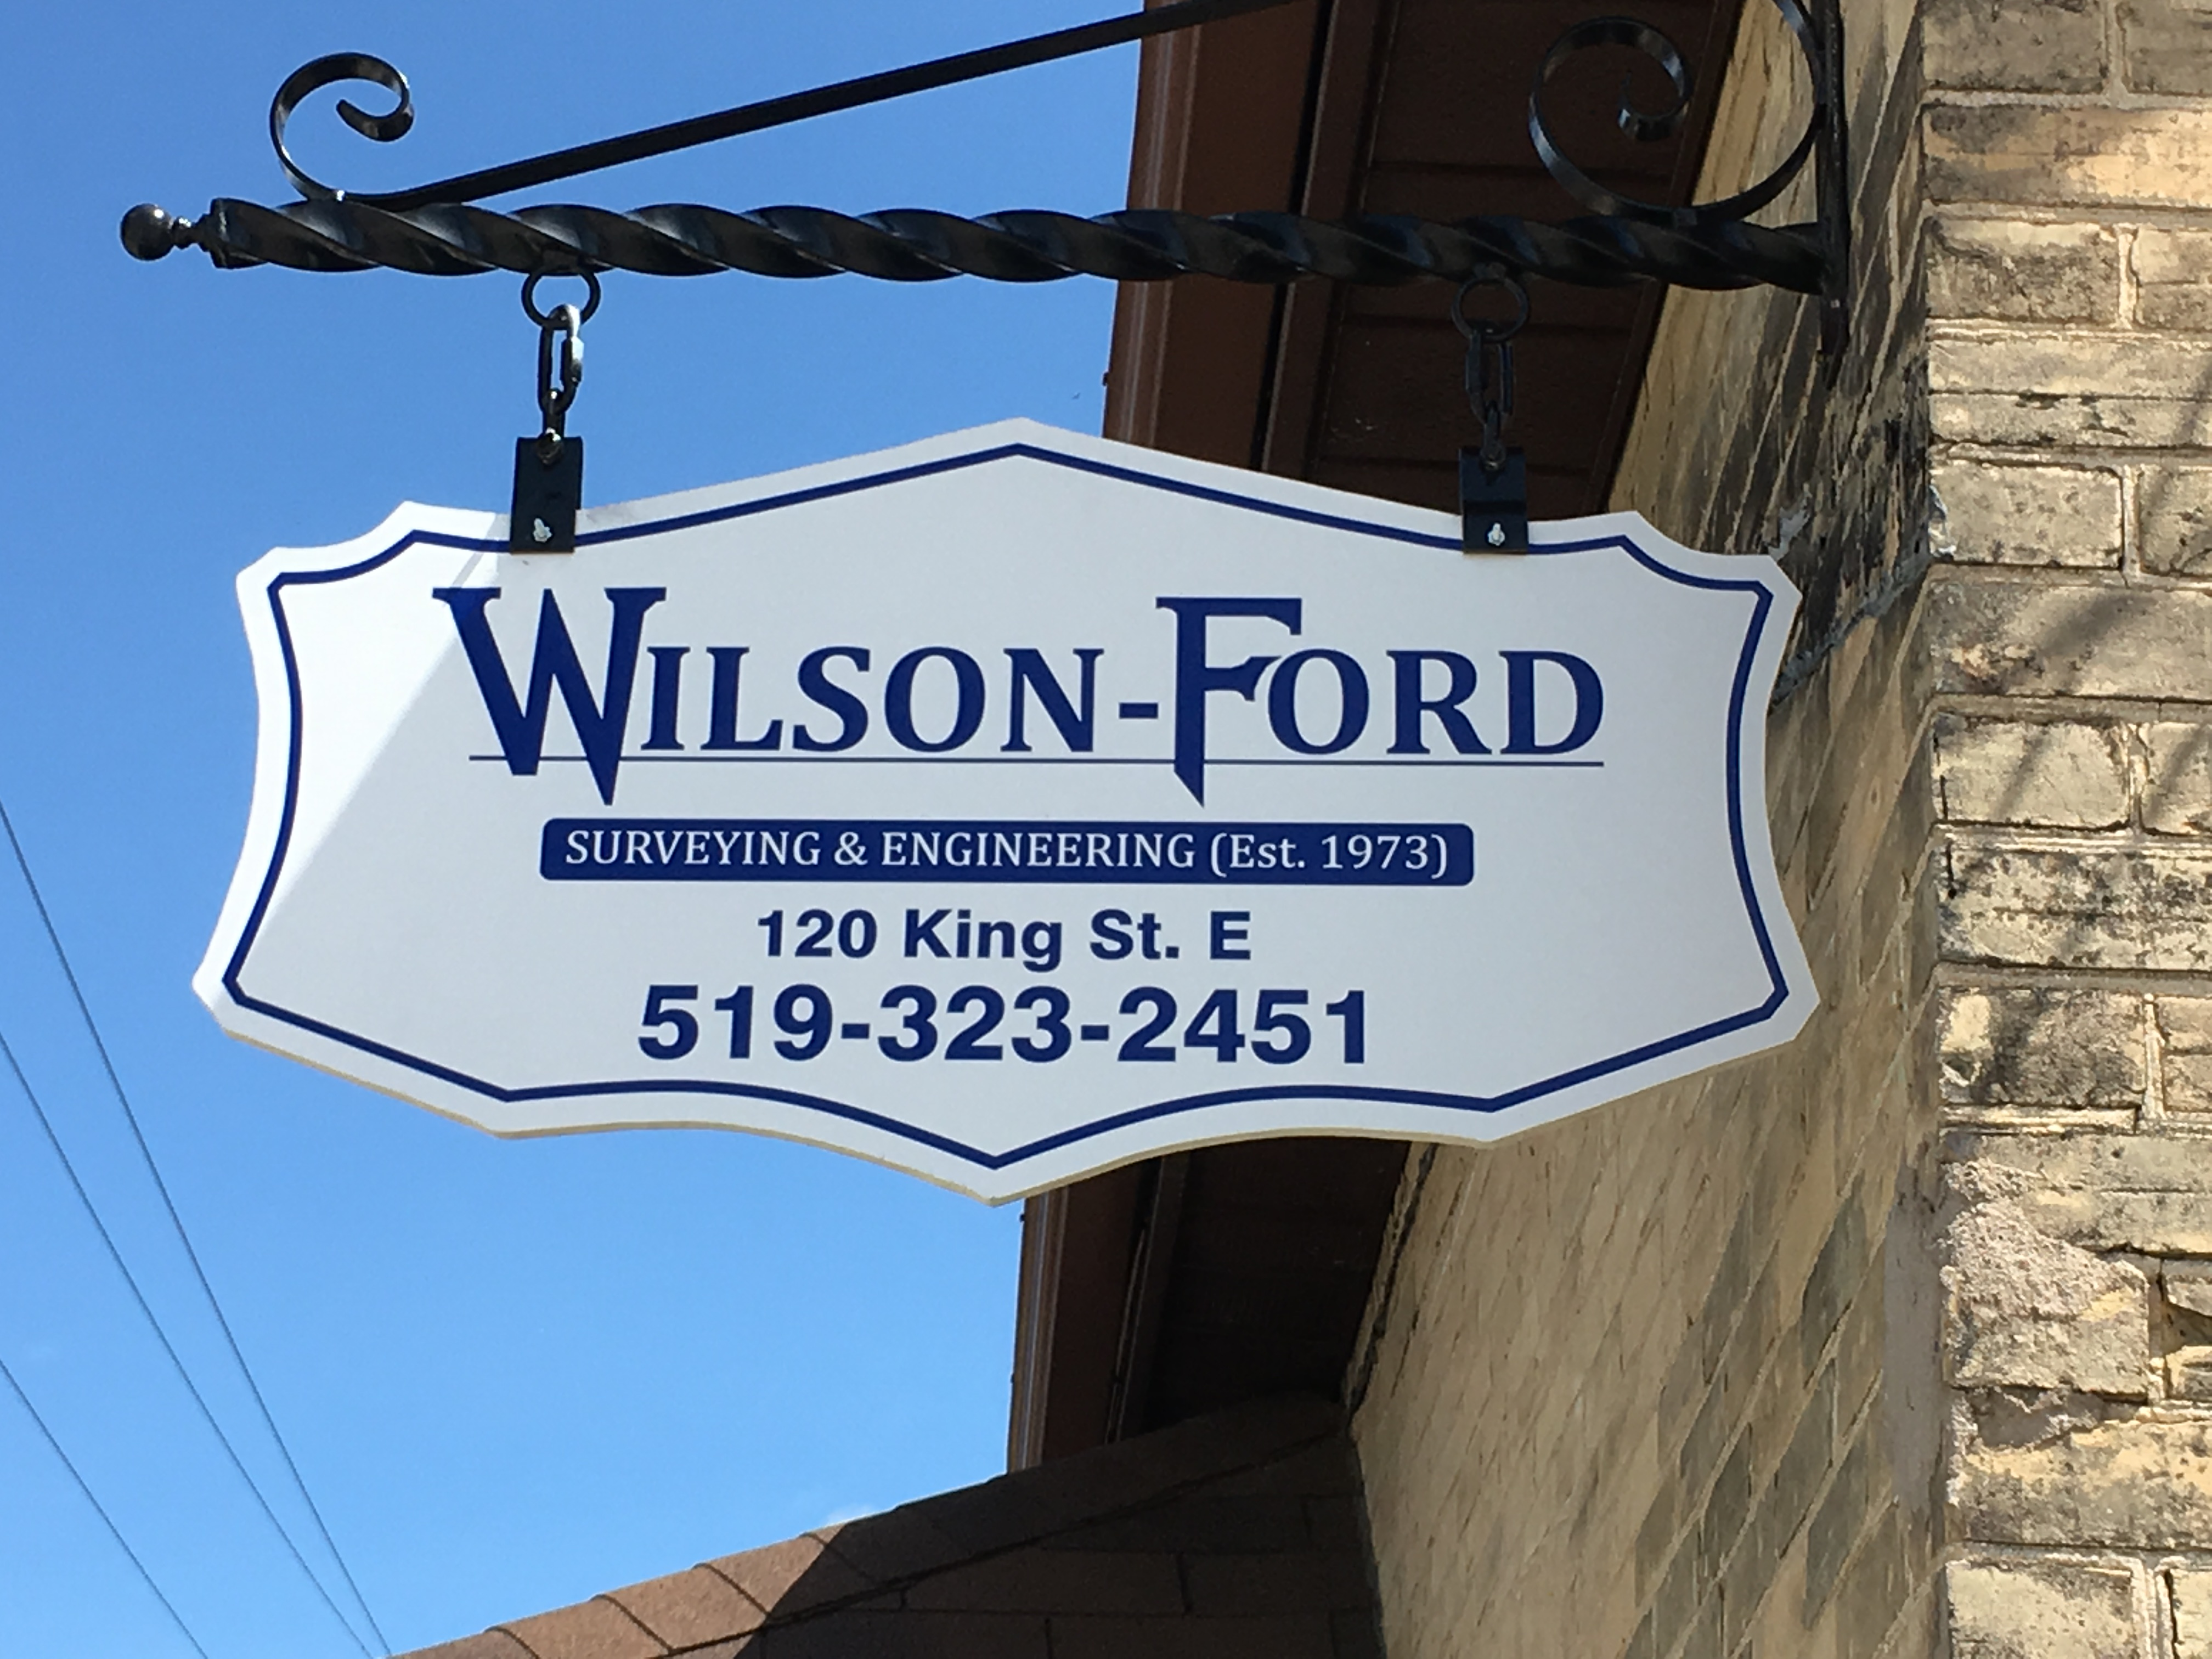 wilson ford business sign